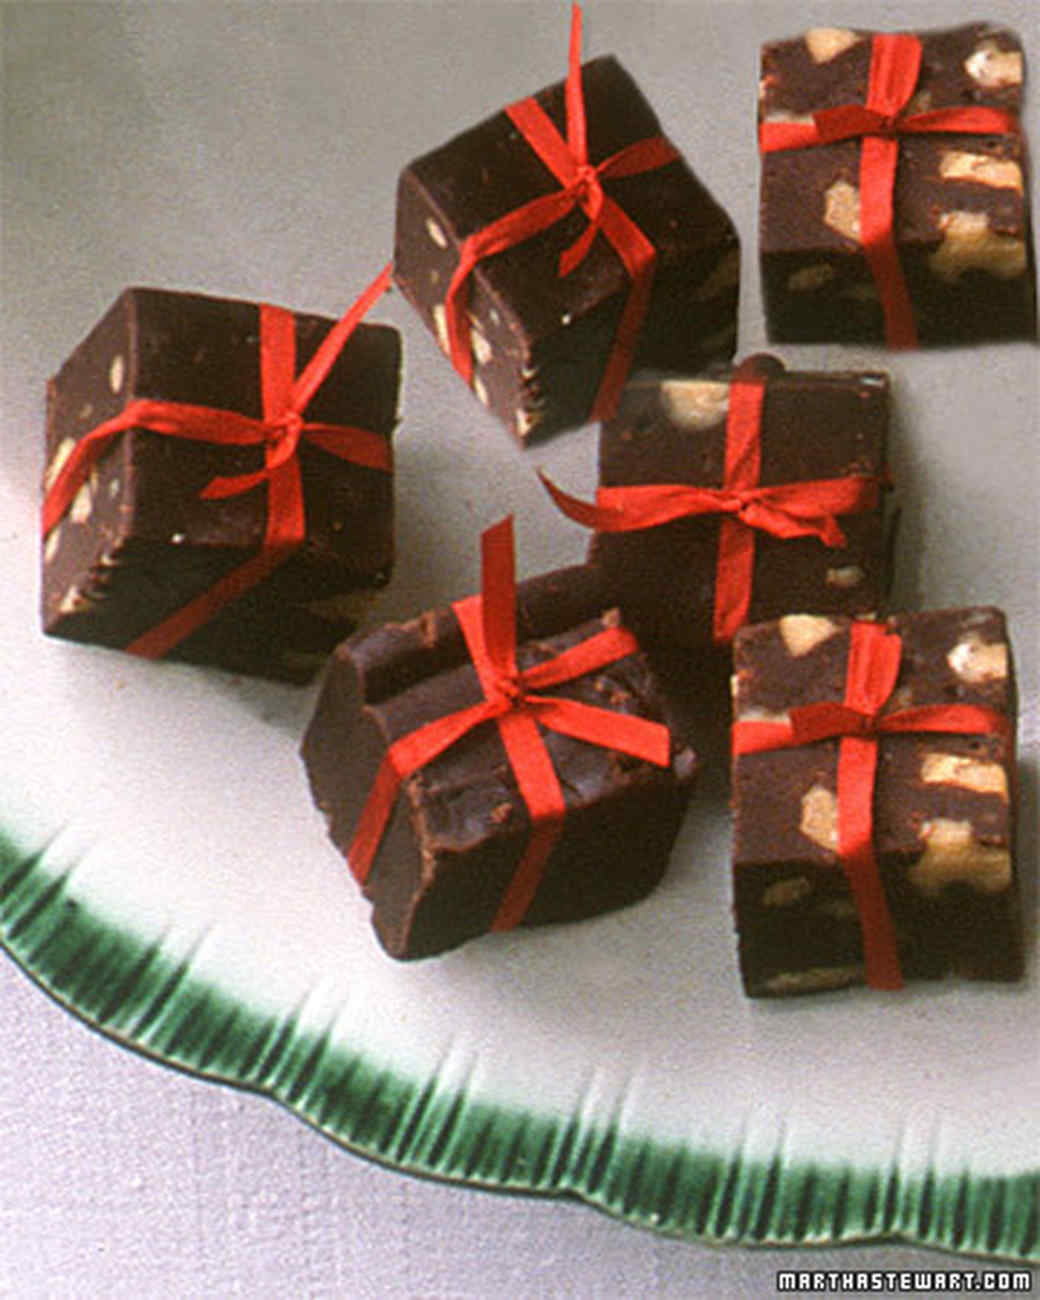 Traditional Christmas Candy Gift Recipes | Martha Stewart